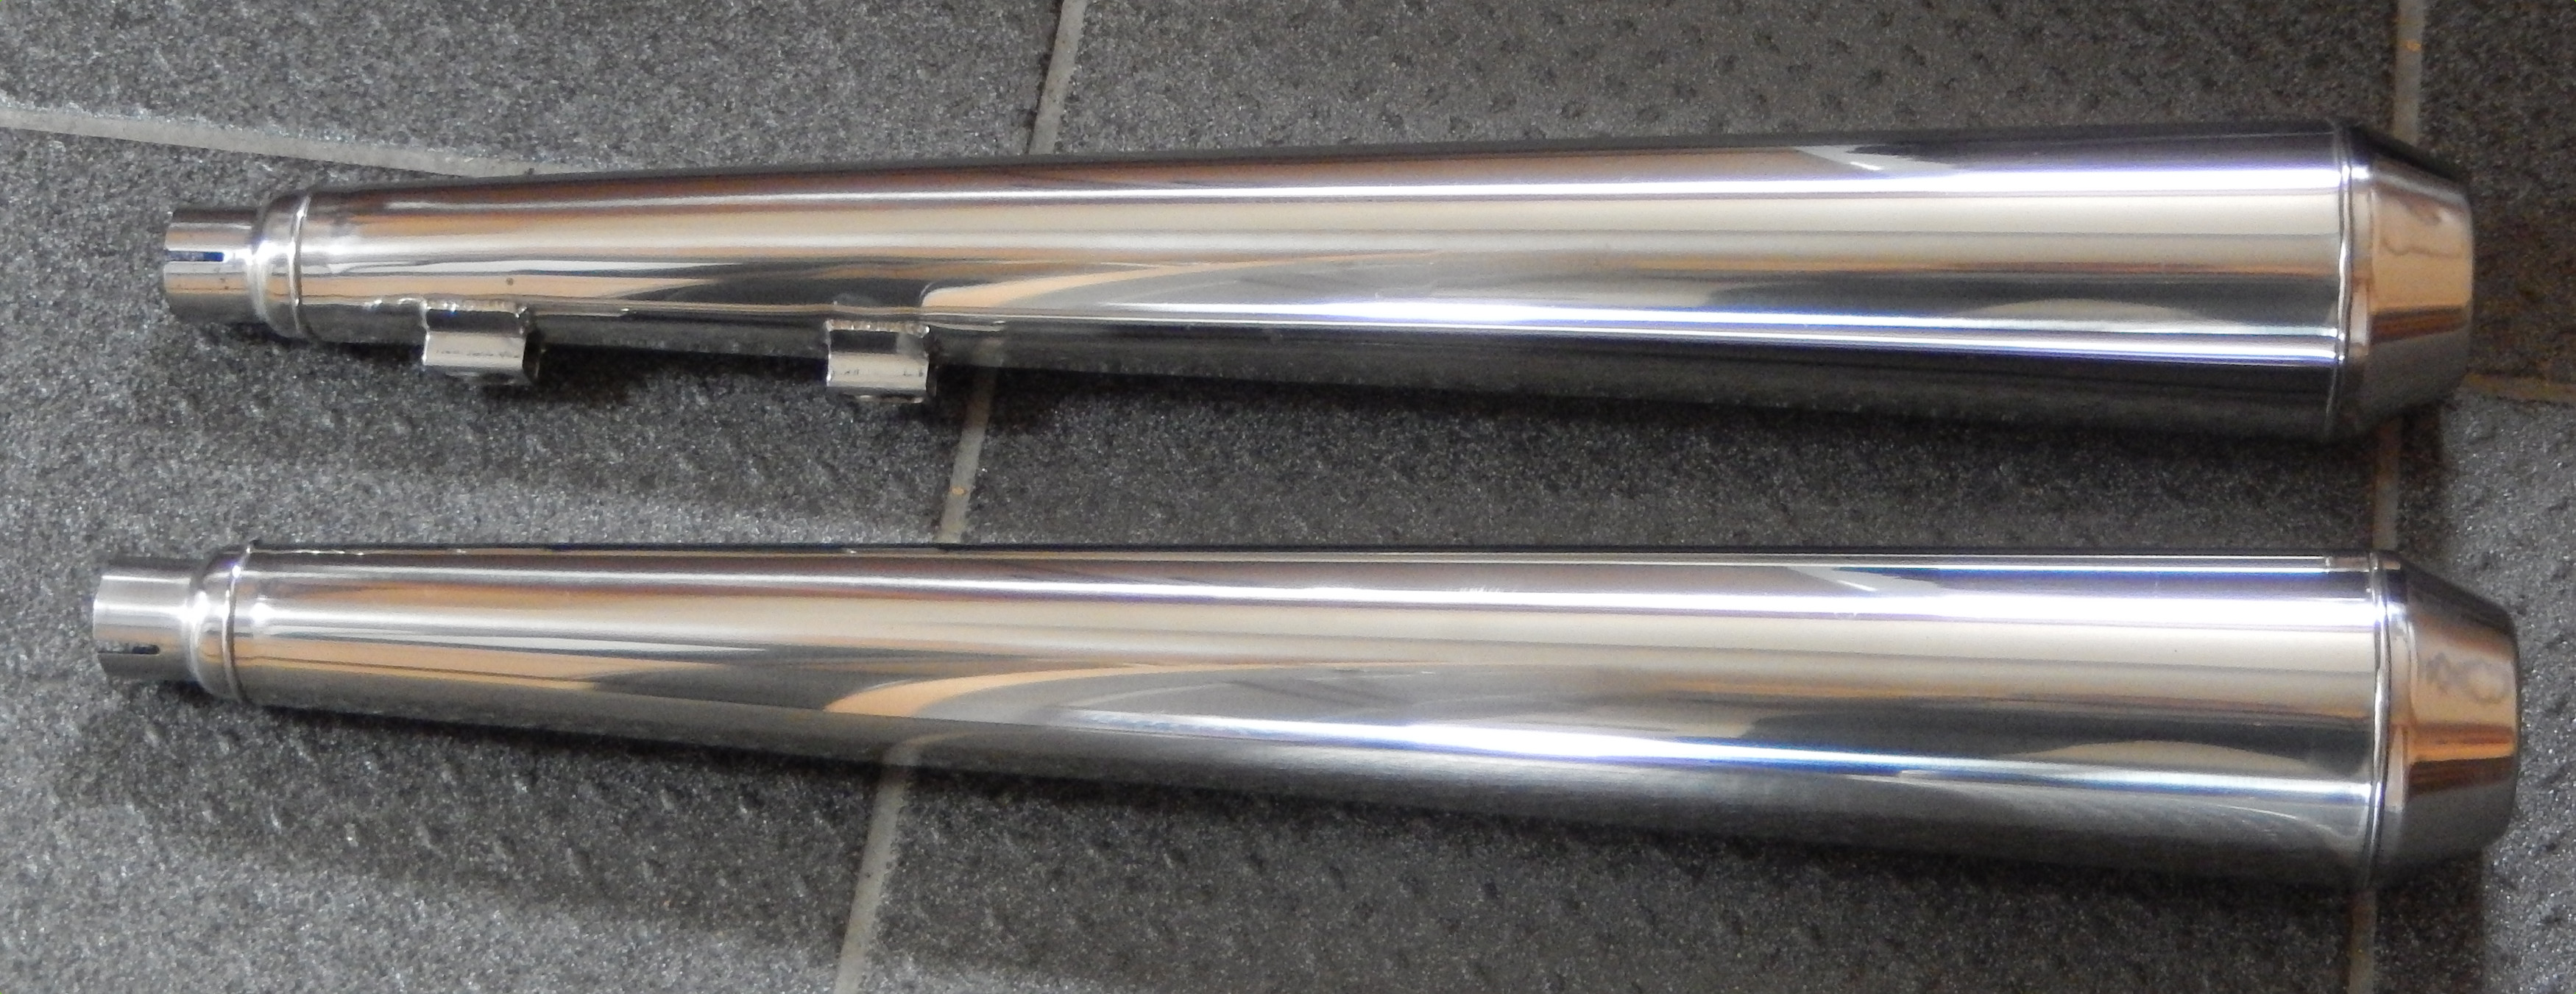 Finely polished stainless steel exhausts